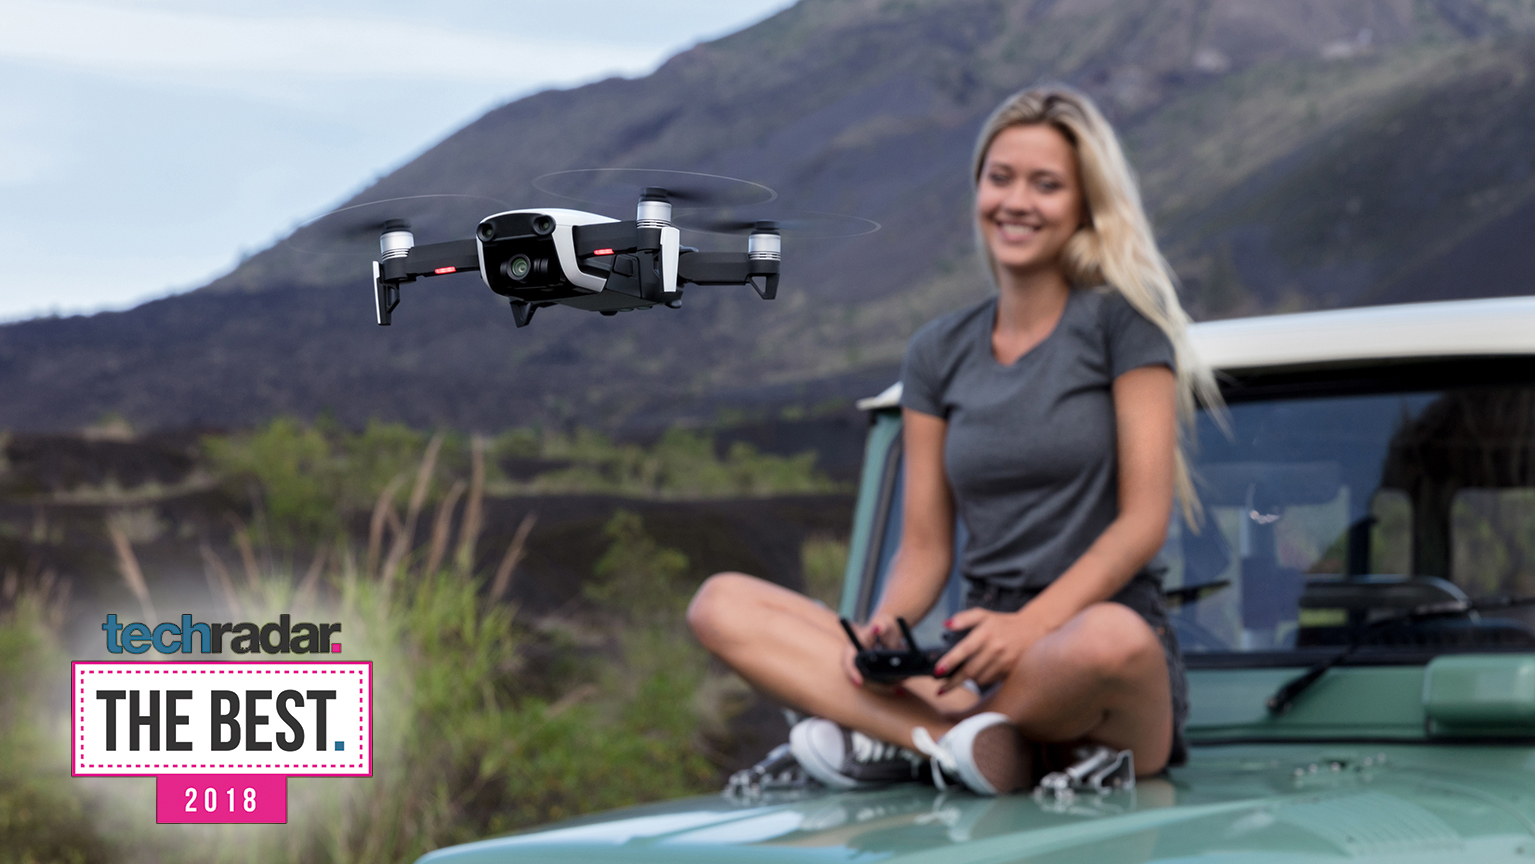 The Best Drone 2018 DJI Parrot And More For Beginners Pros